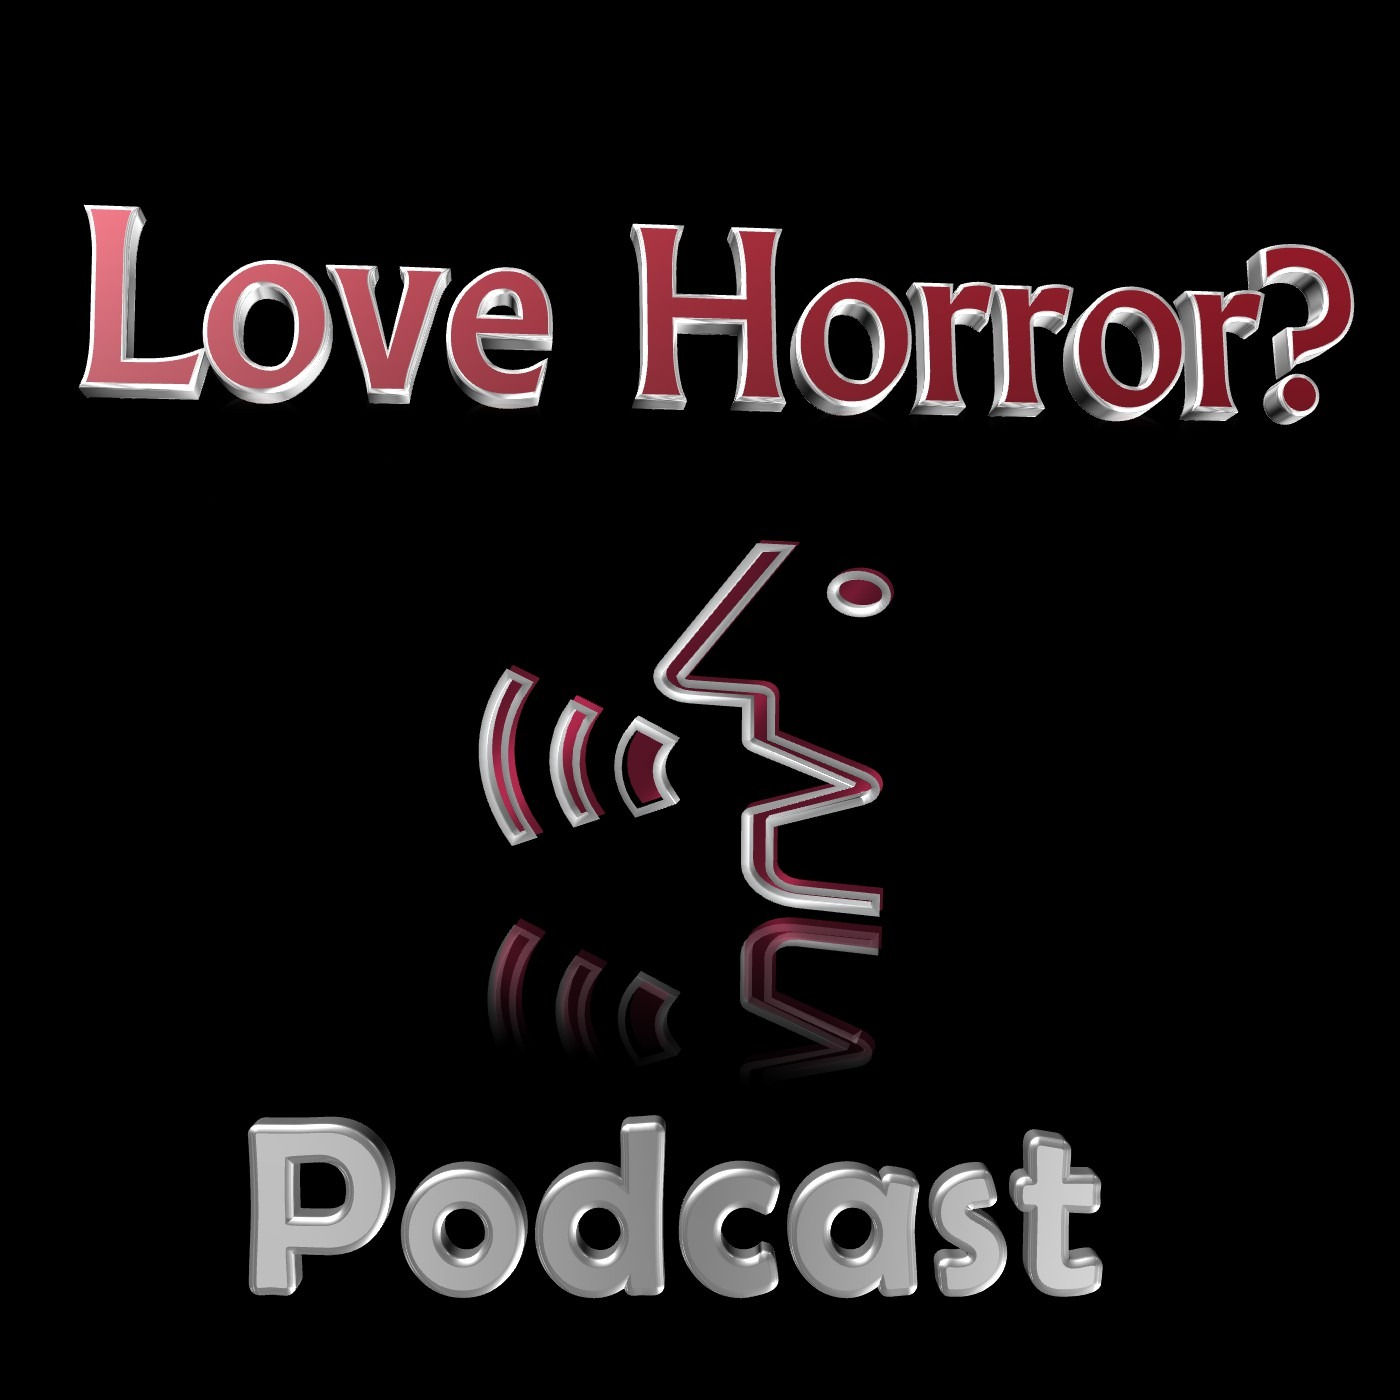 Love Horror? Podcast